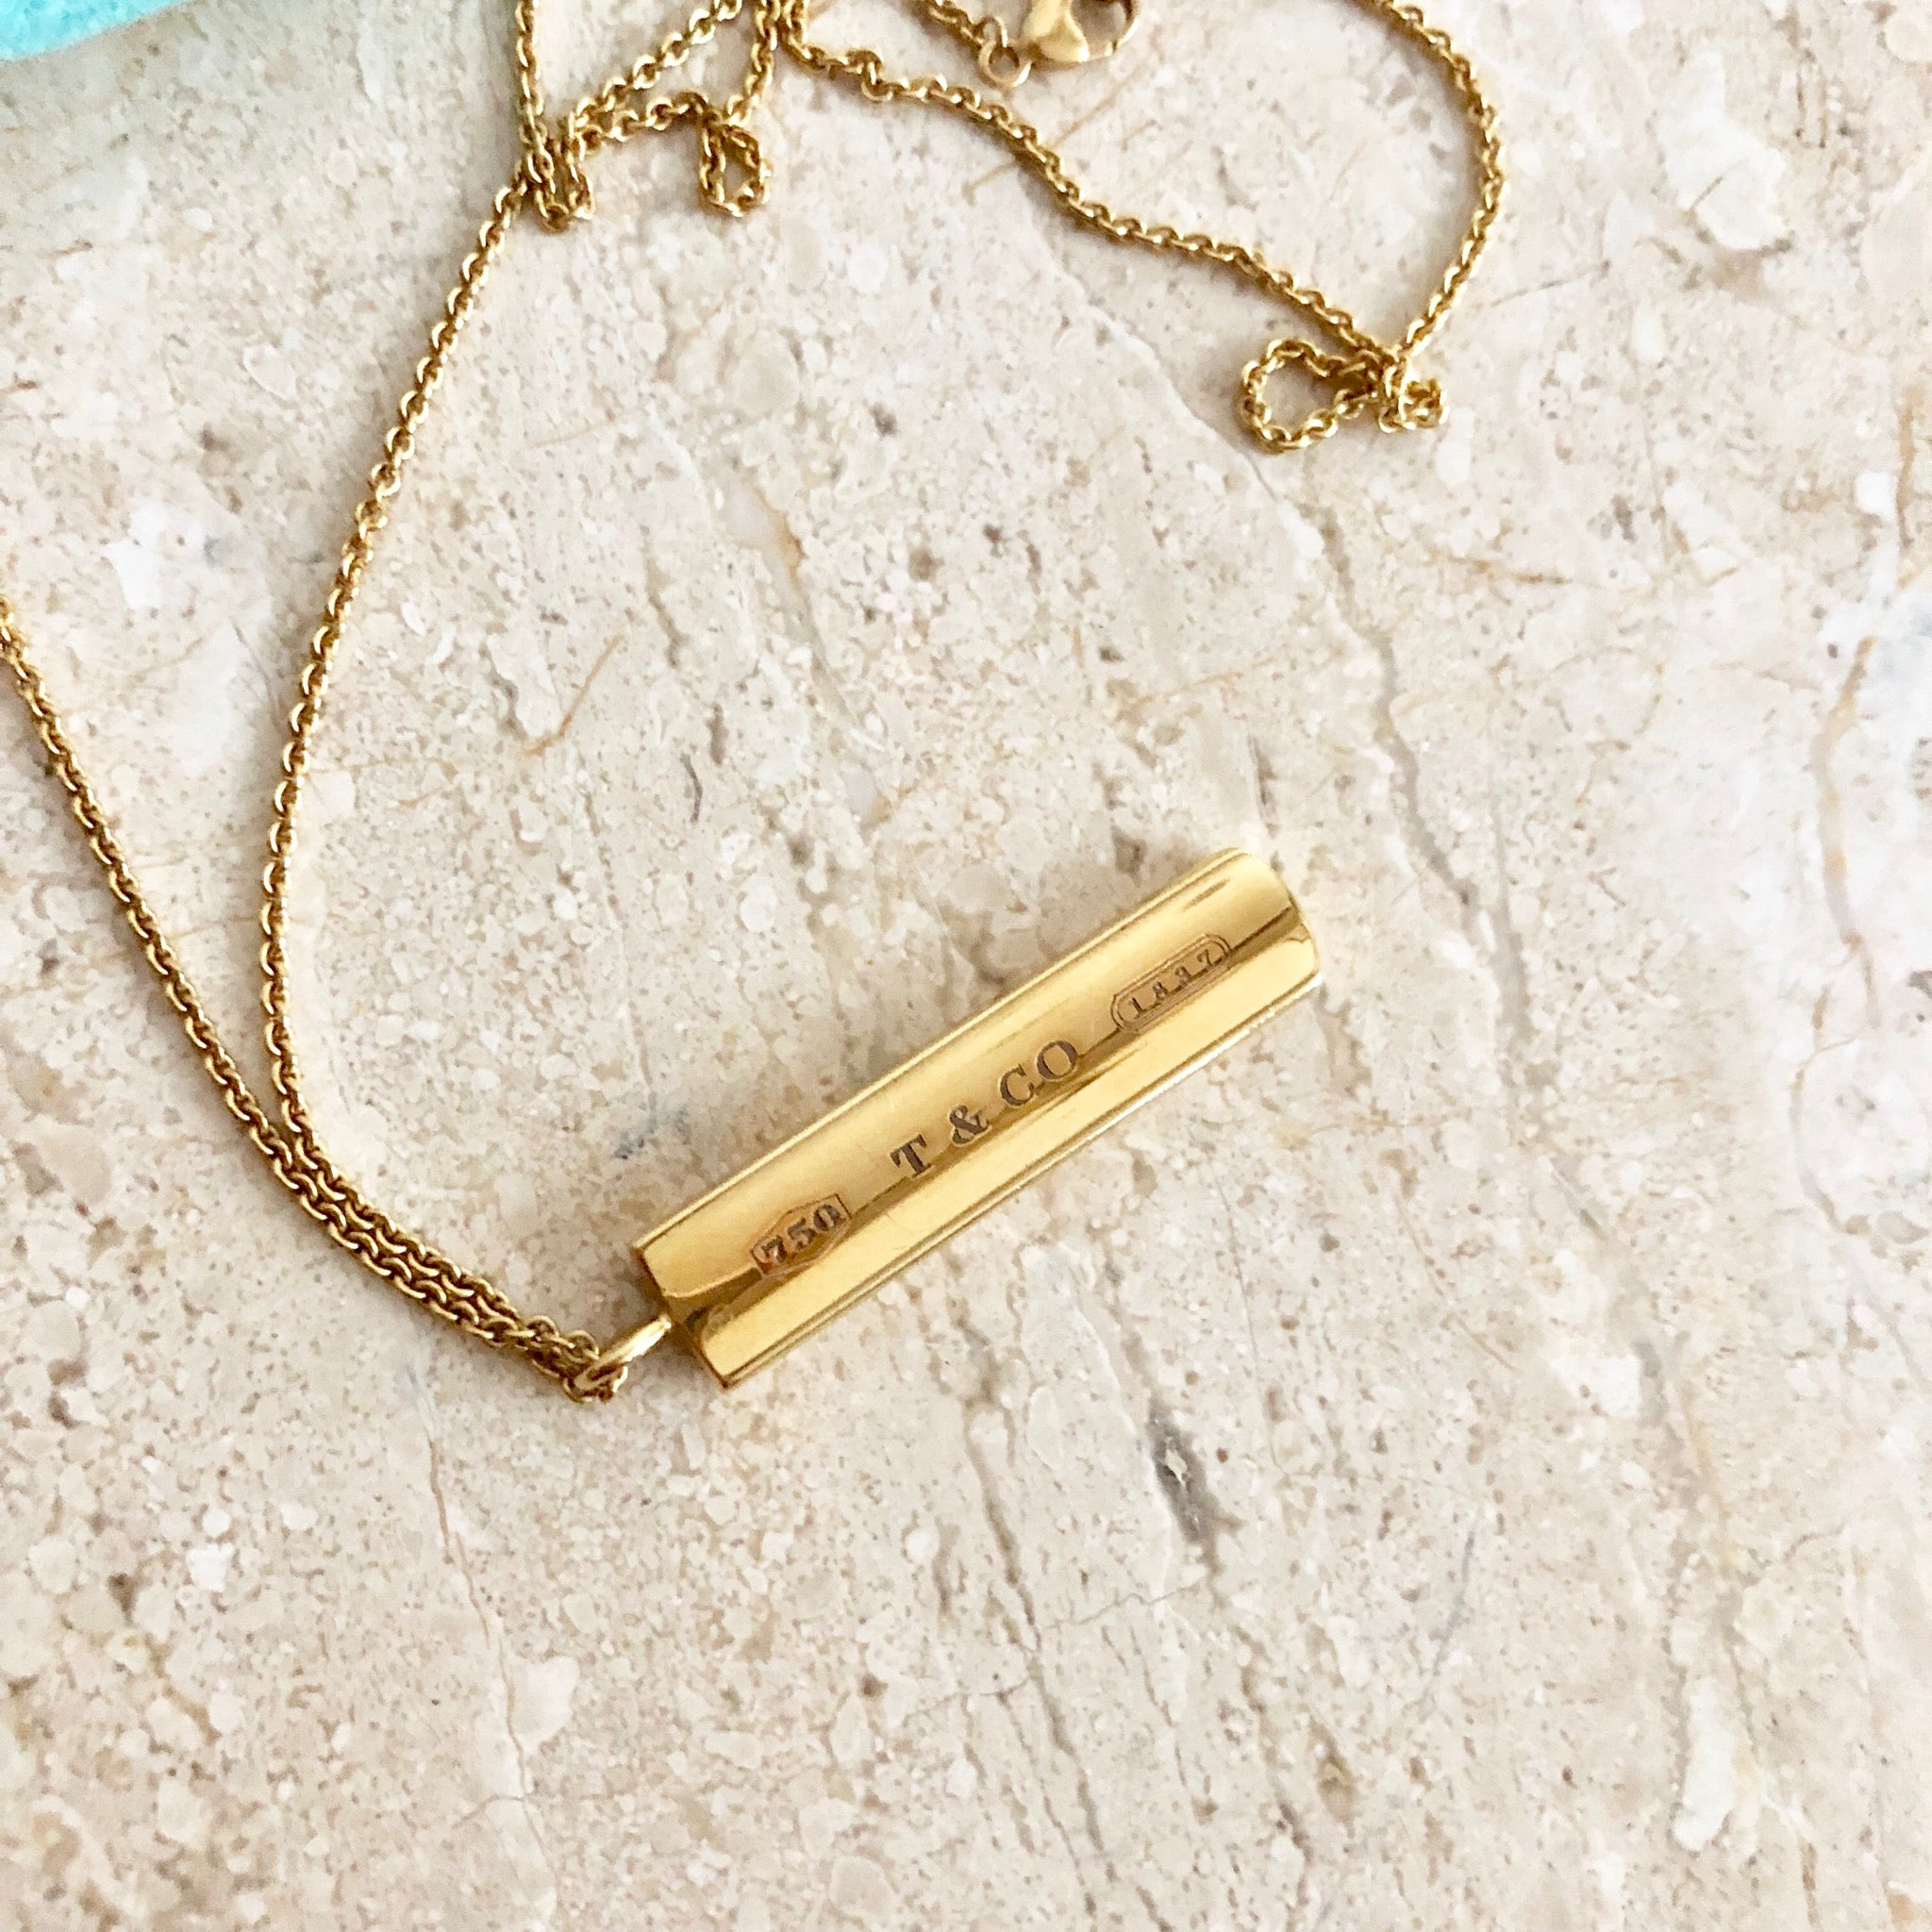 Authentic TIFFANY & CO. 18K Gold 1837 Bar Pendant Necklace